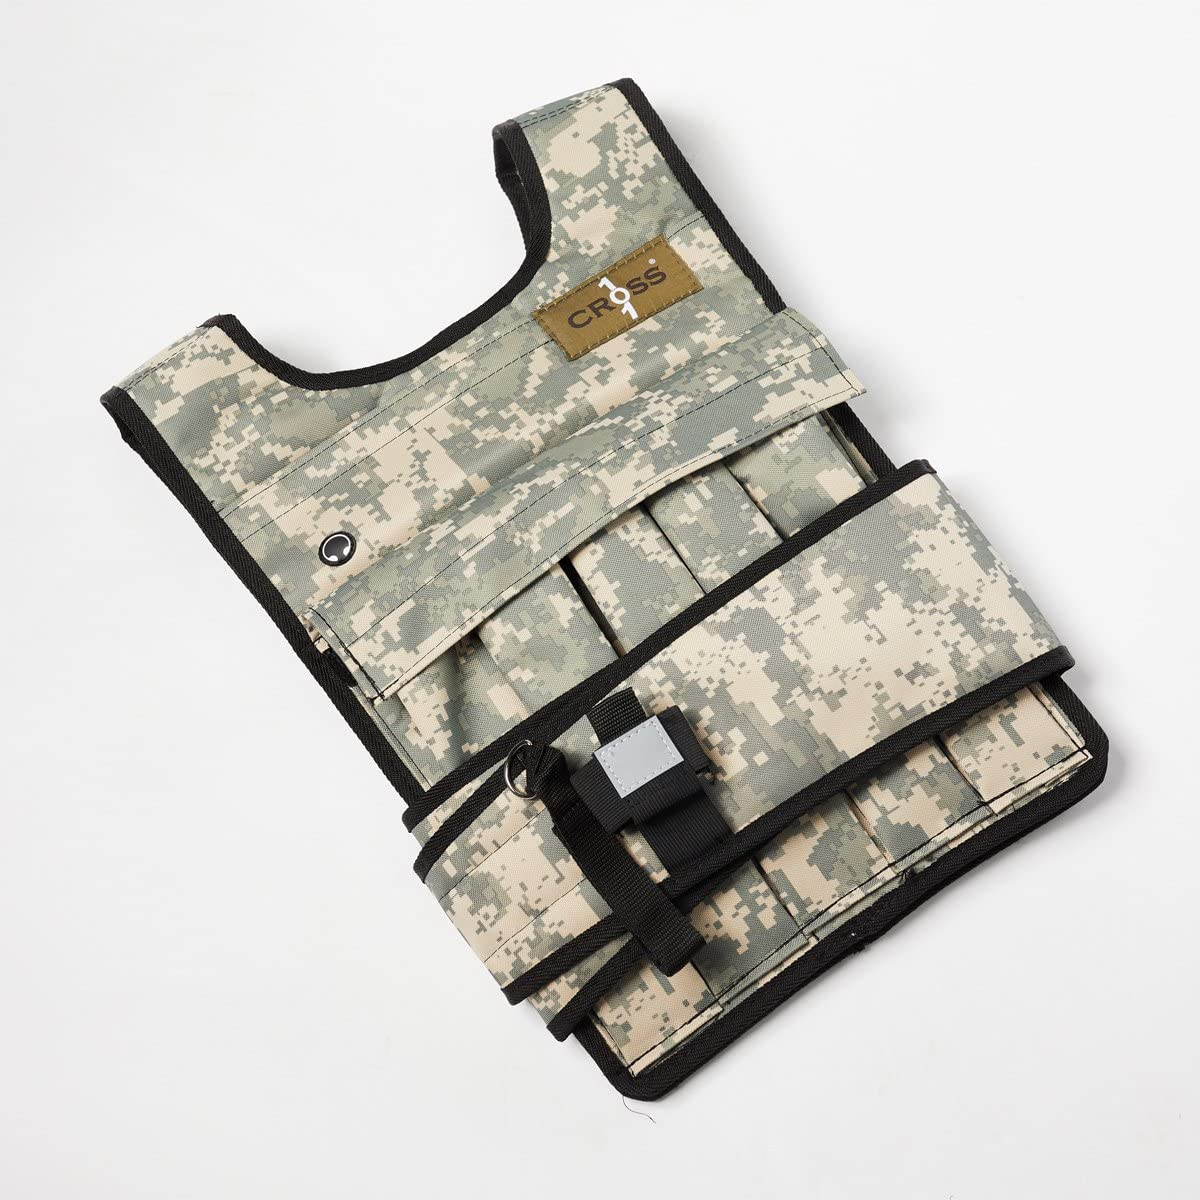 CROSS101 Camouflage Adjustable Weighted Vest with Shoulder Pads 50